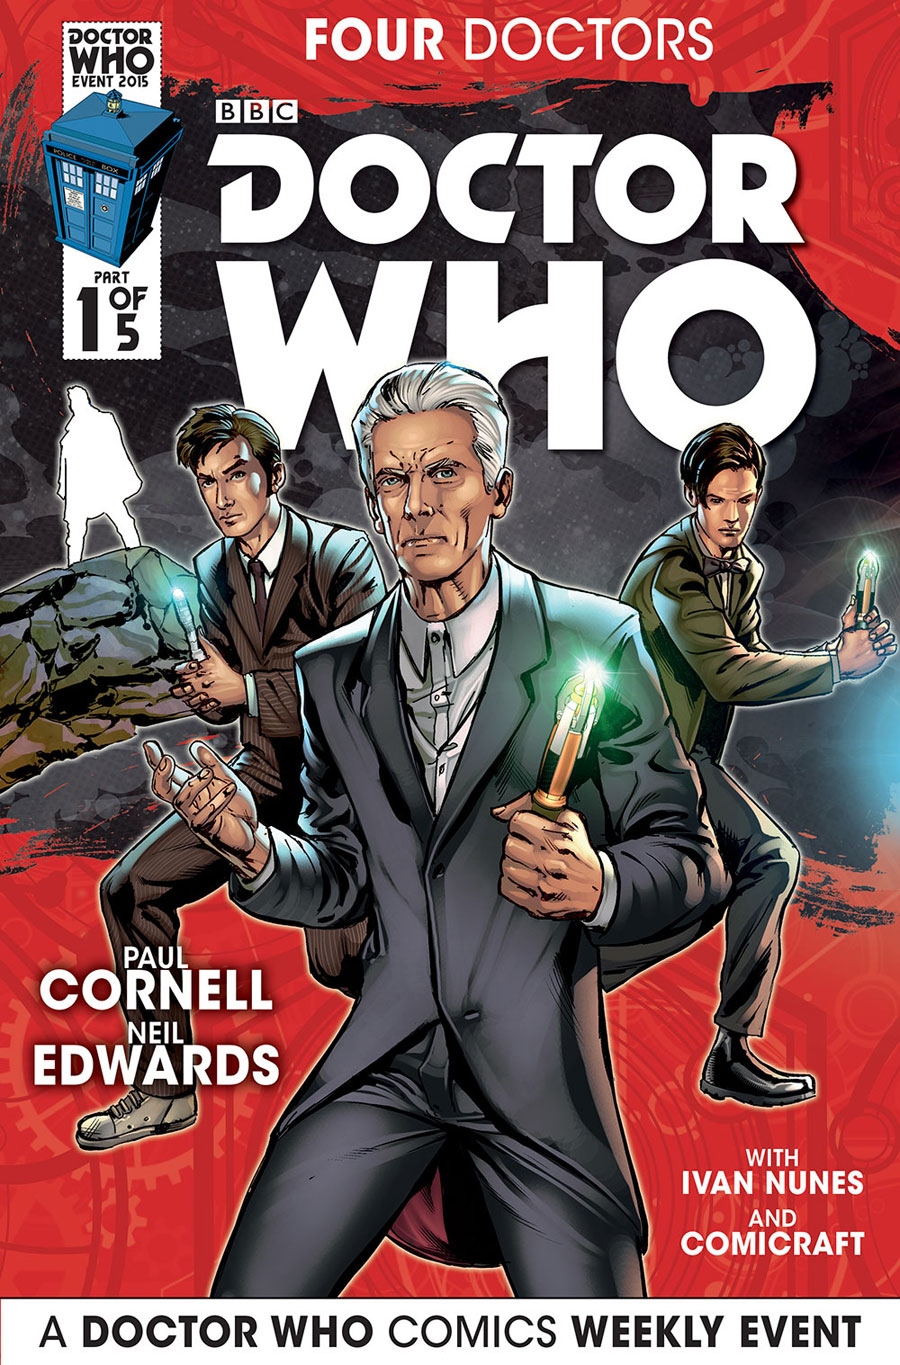 Titan-Comics-Doctor-Who-1-Four-Doctors-Doctor-Who-Brasil